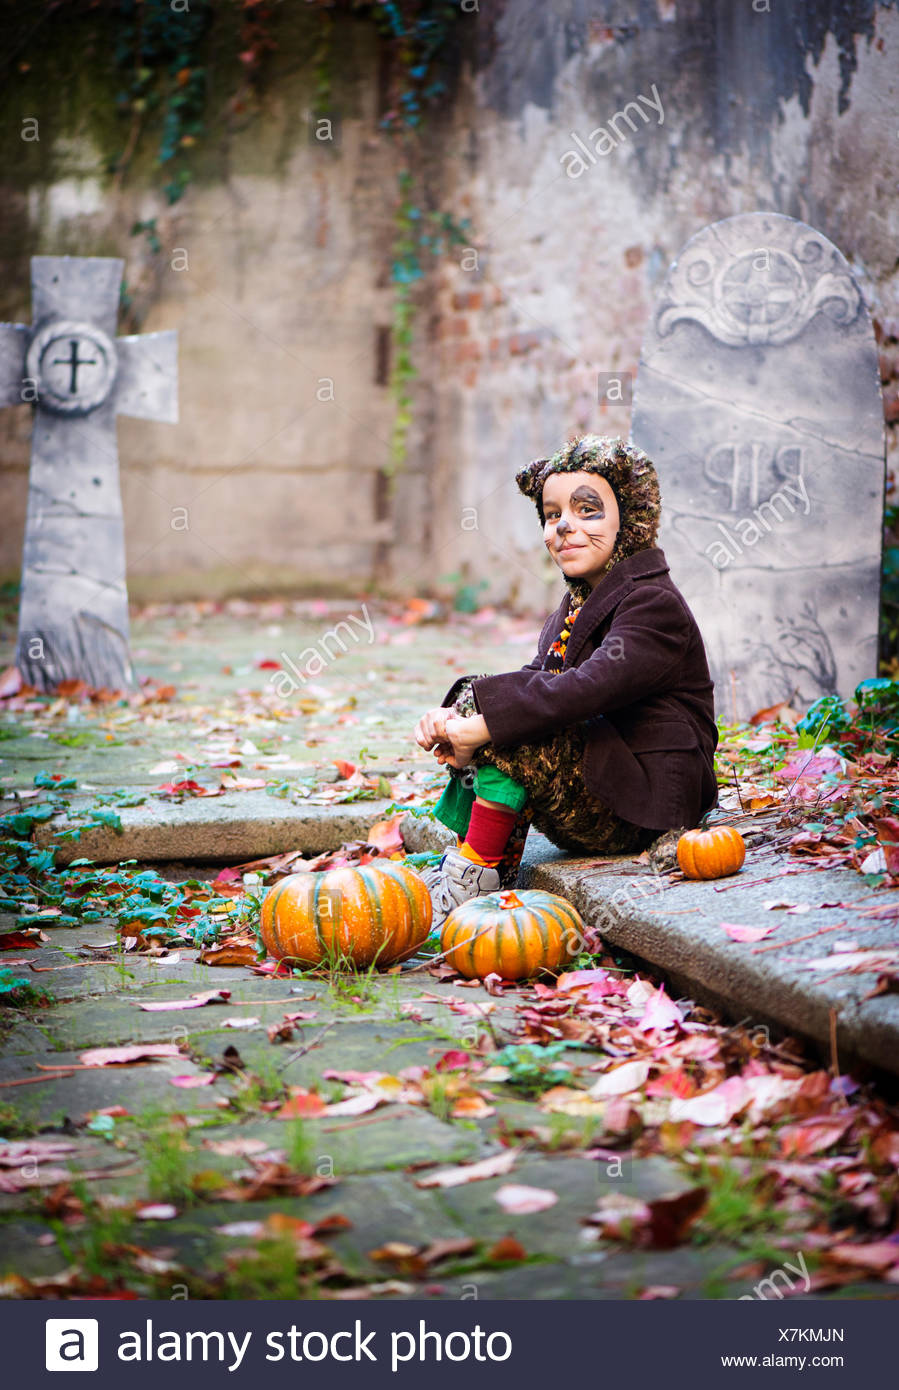 Boy in halloween costume sitting in cemetery - Stock Image